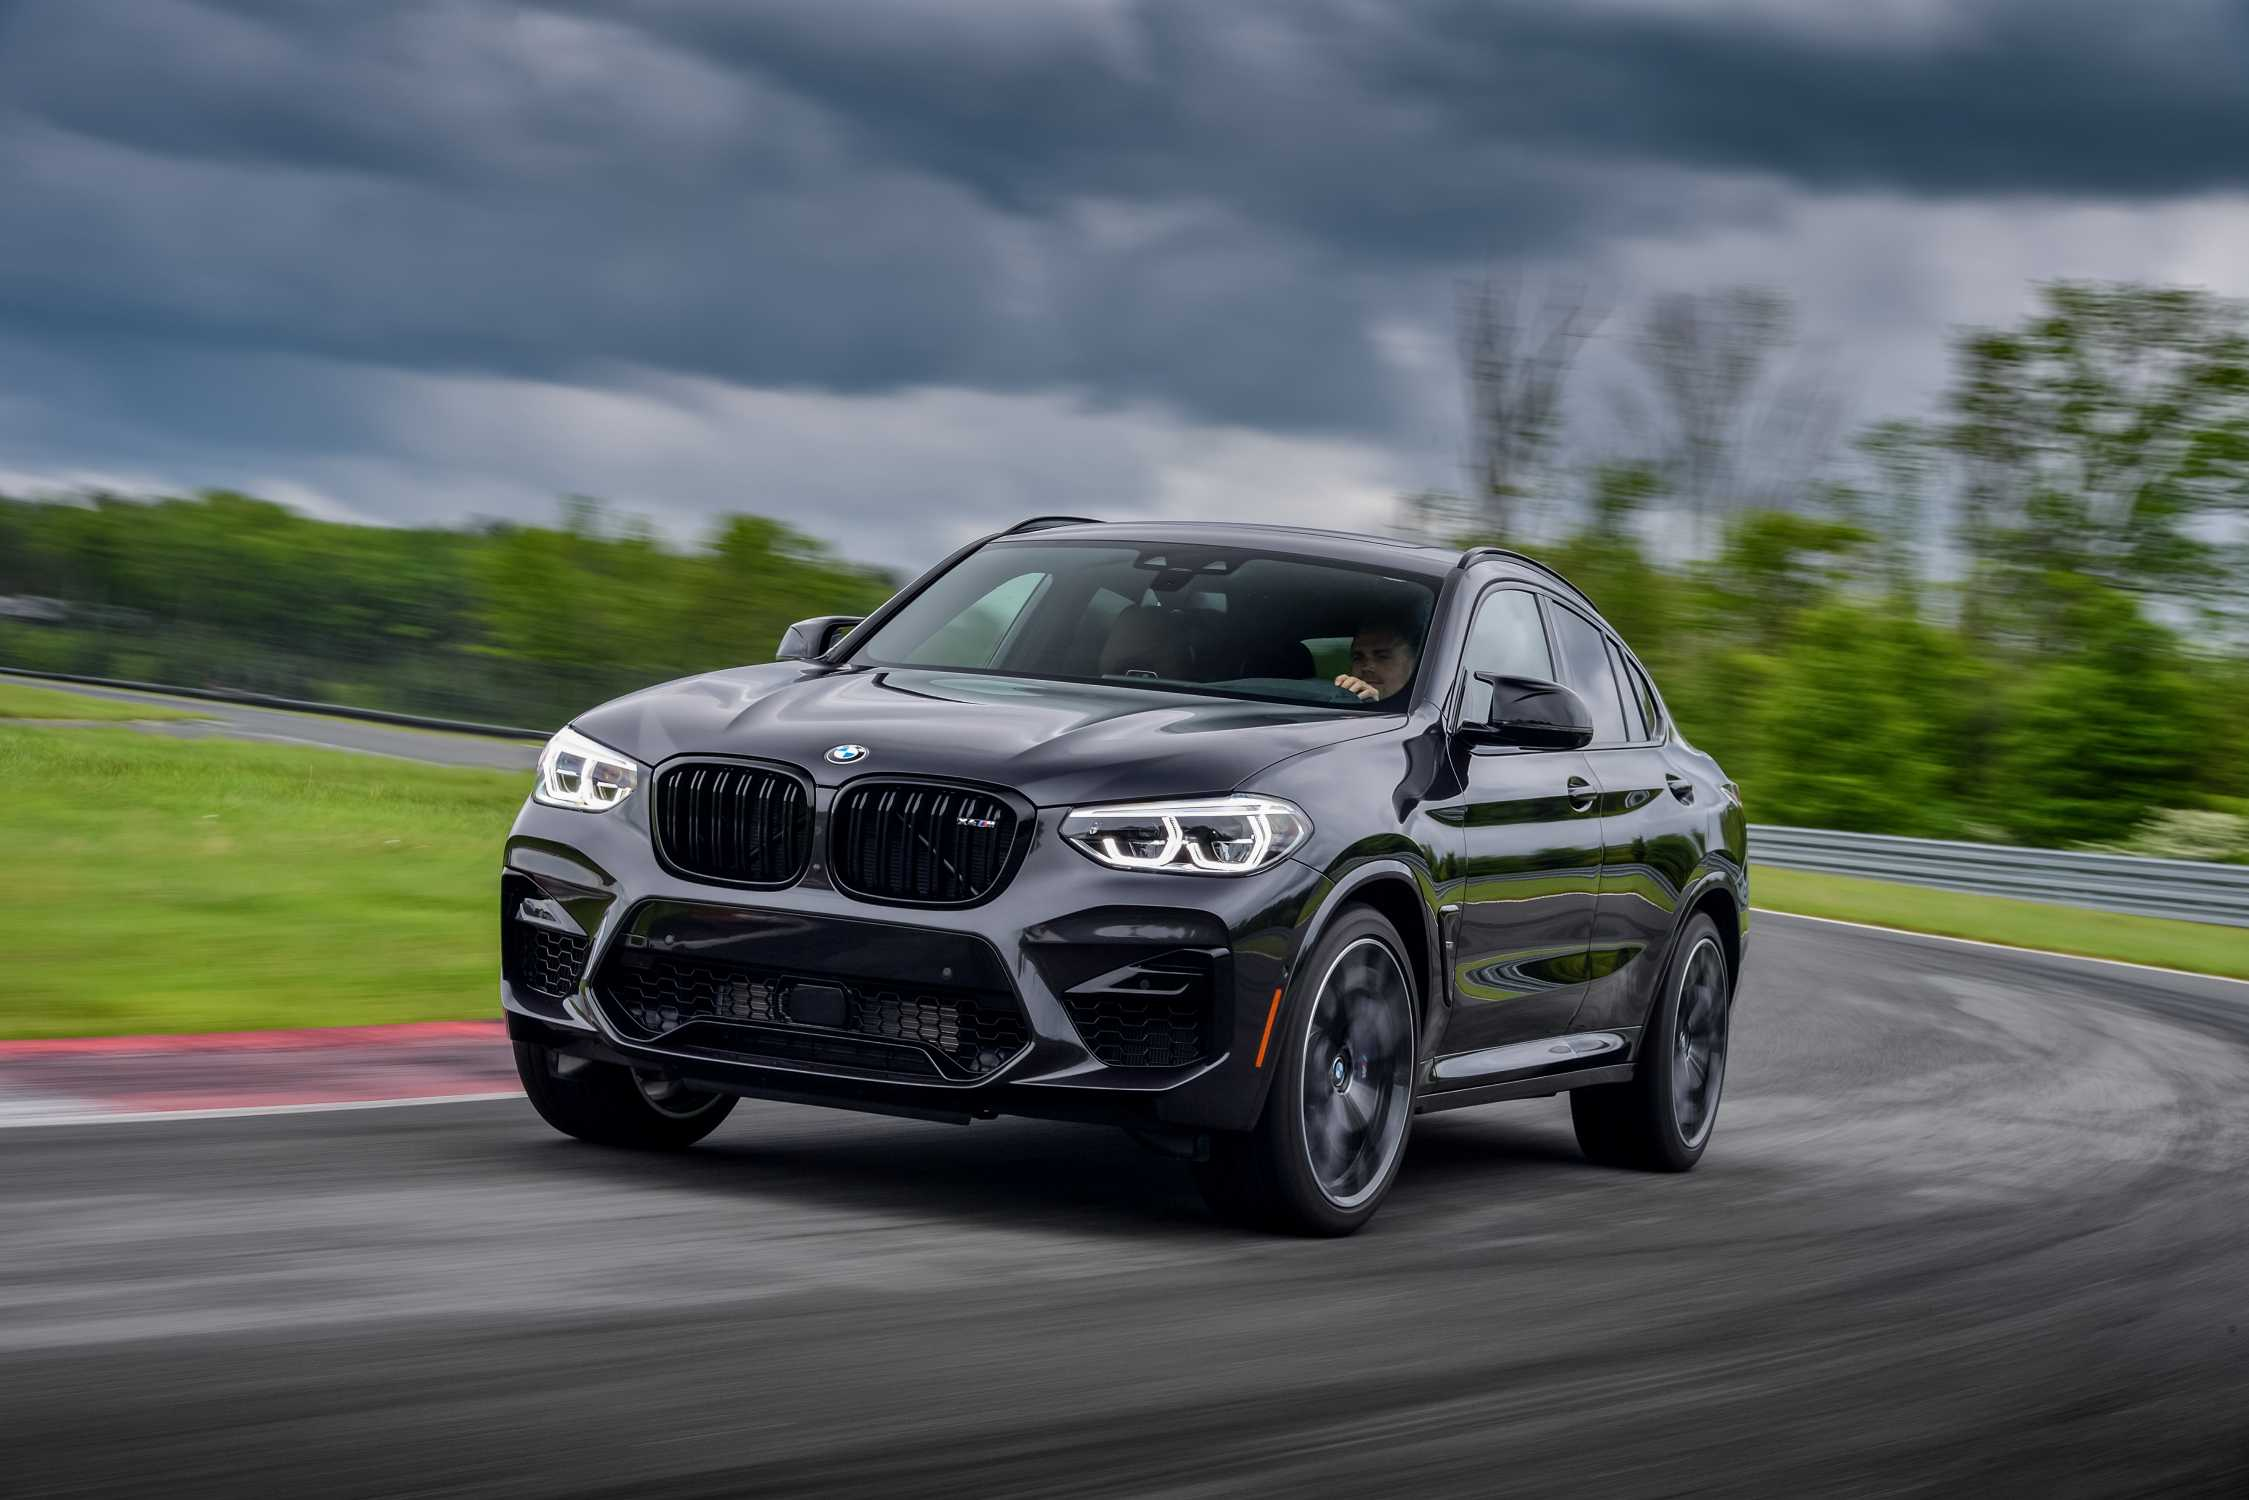 The All New Bmw X3 M And The All New Bmw X4 M Additional Pictures